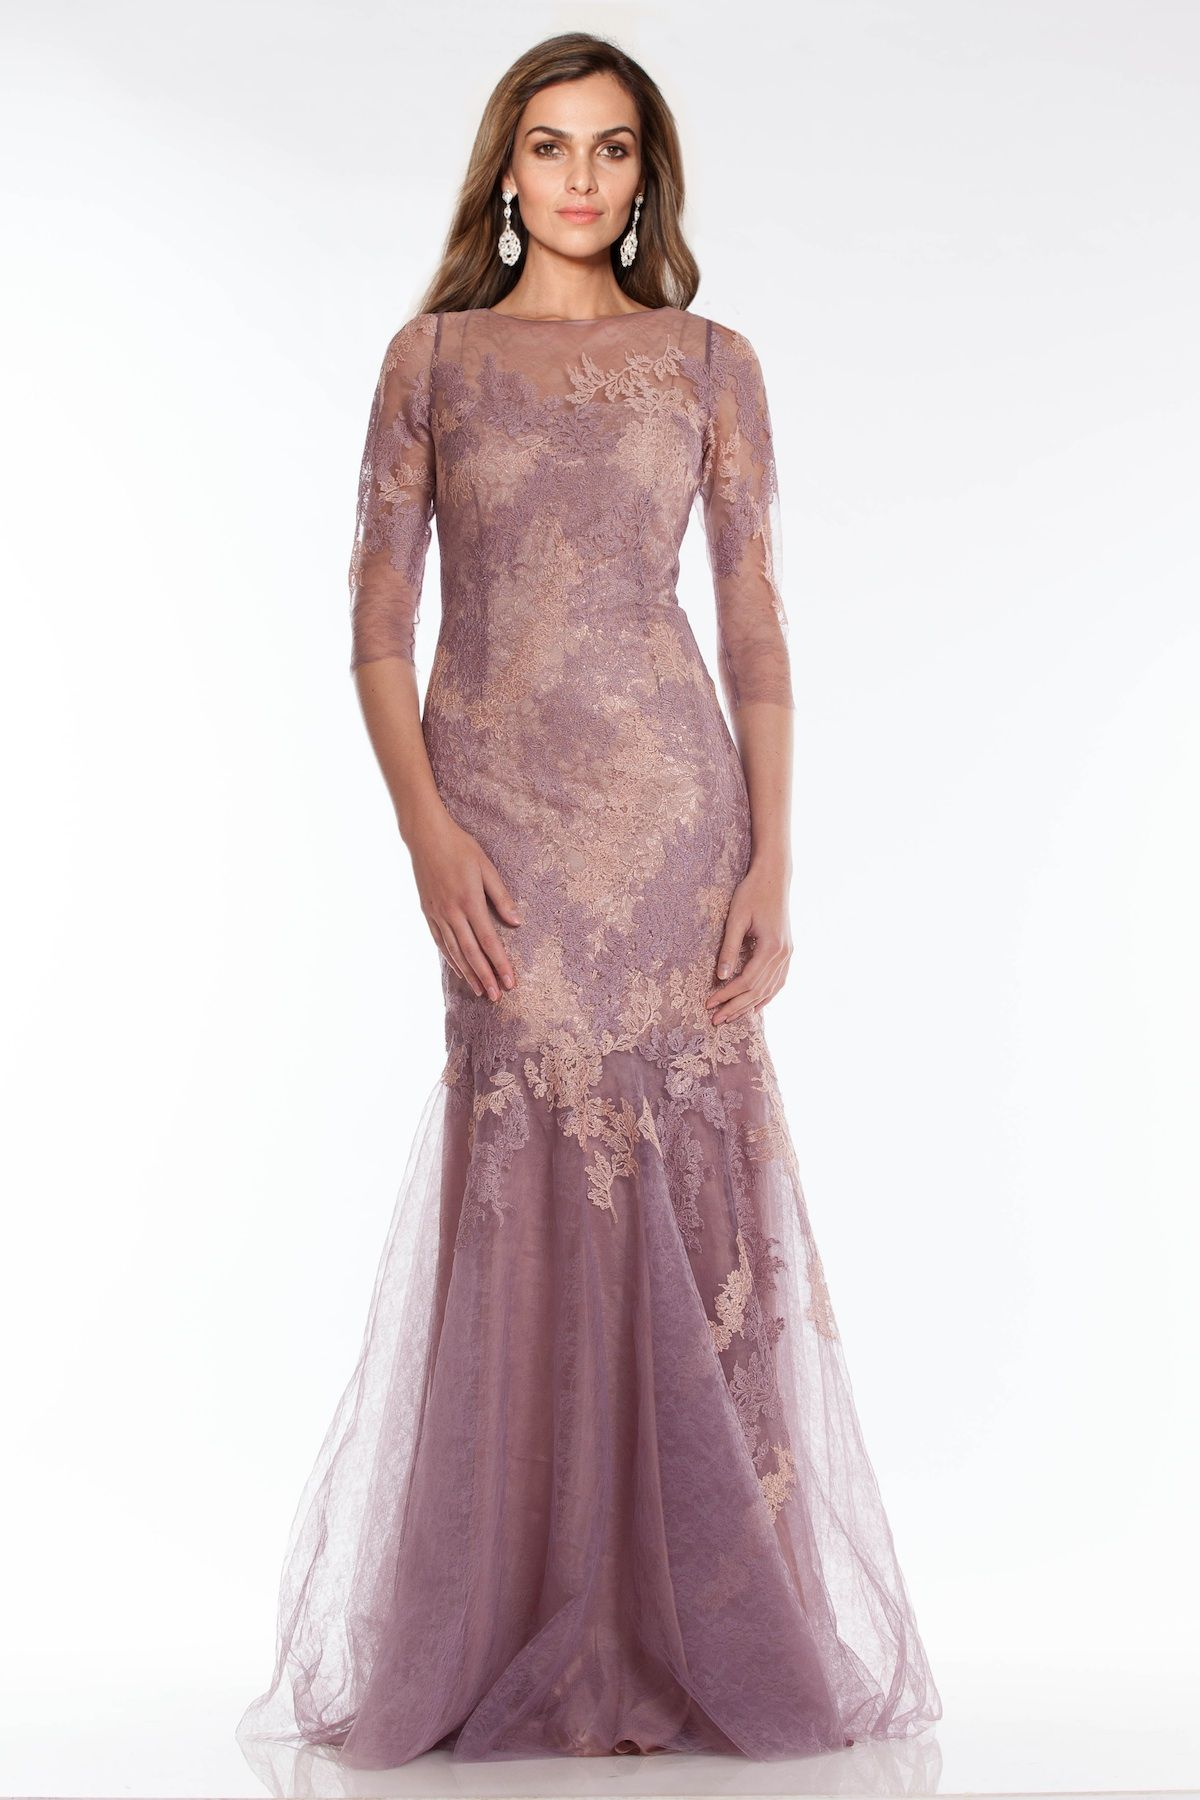 Mauve 3 4 Sleeve Lace and Tulle Gown  c3a0489b28d5